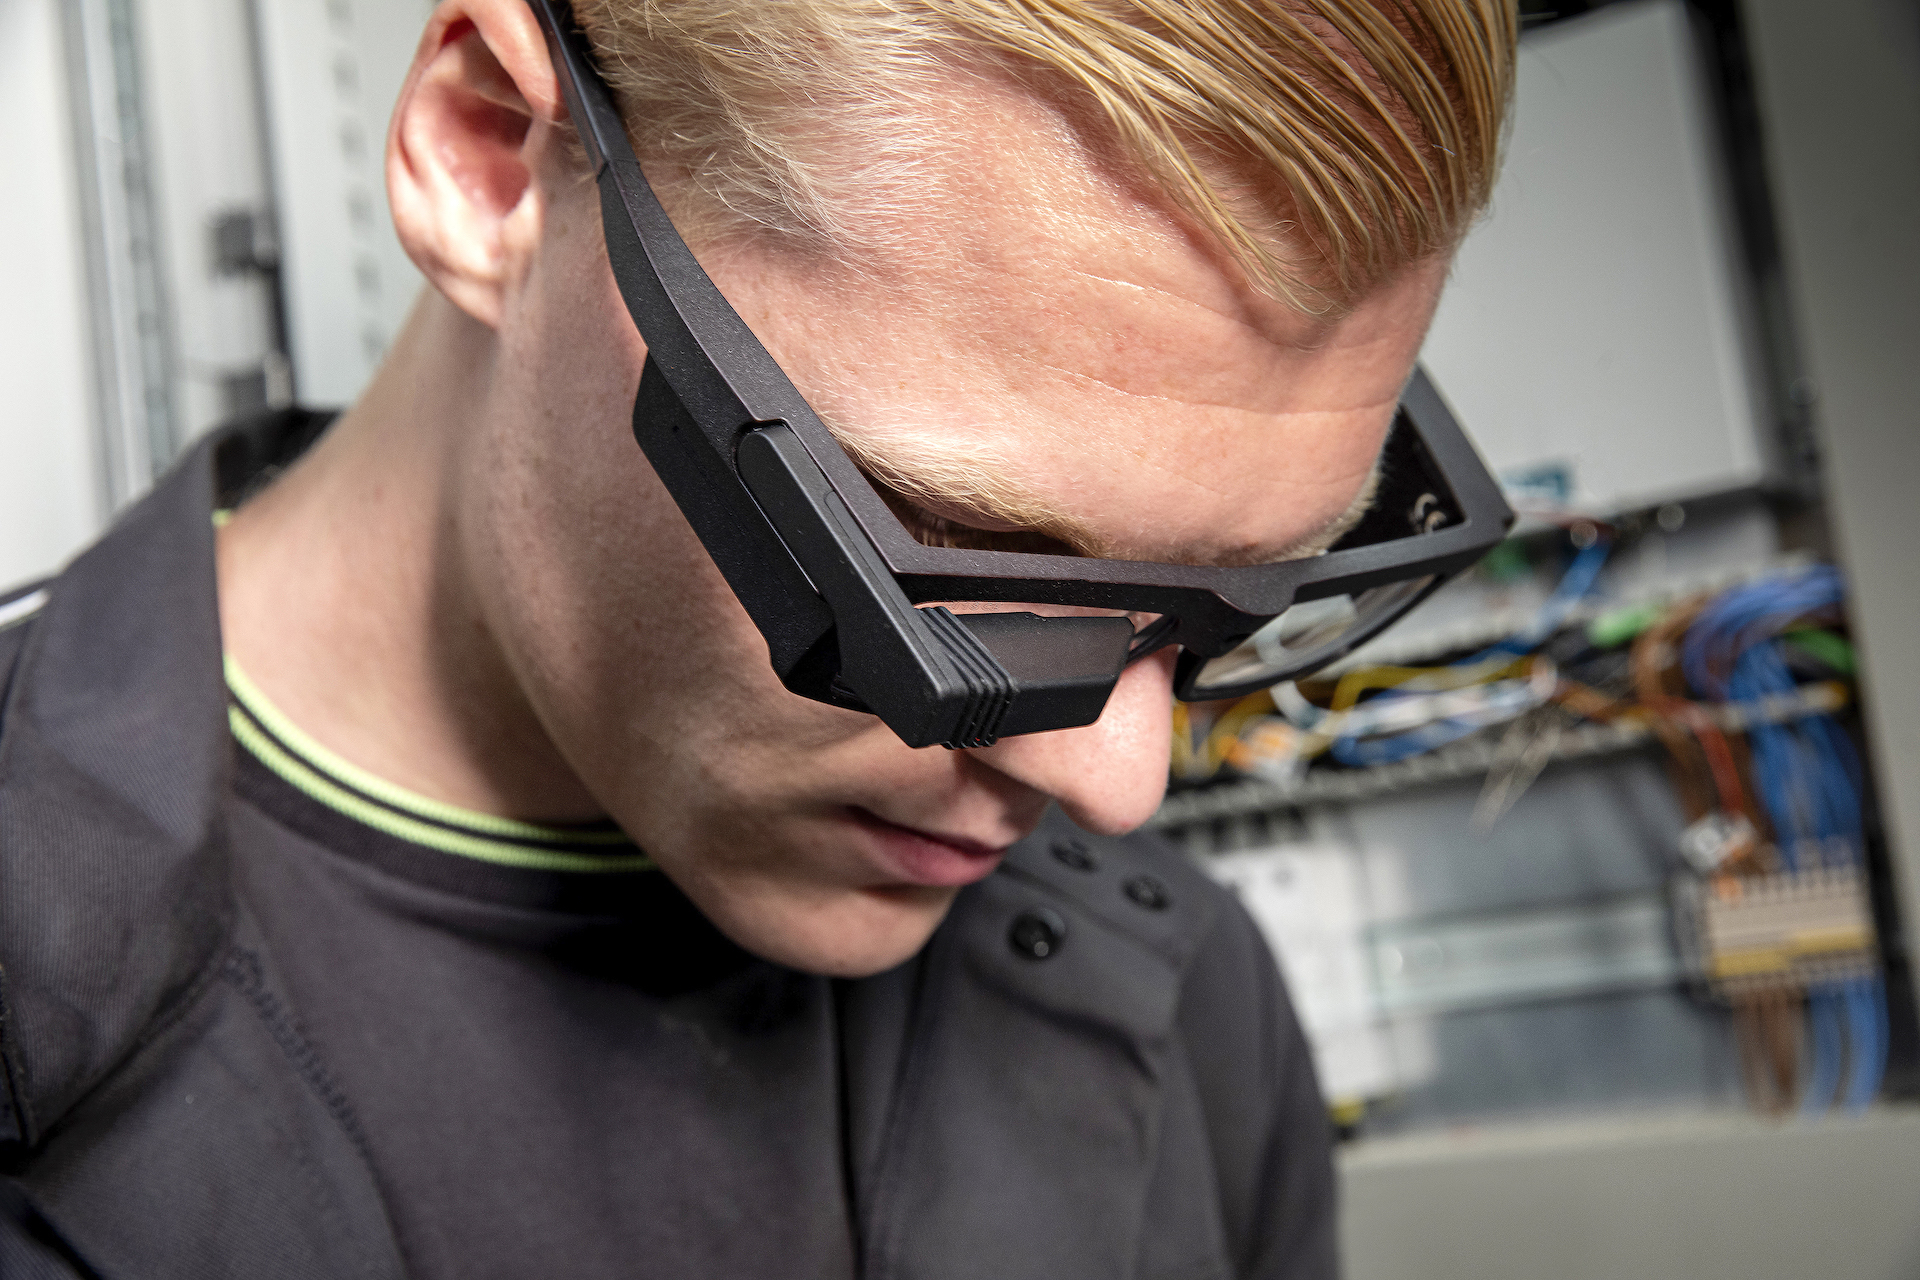 Operator wearing smart glasses for remote assistance